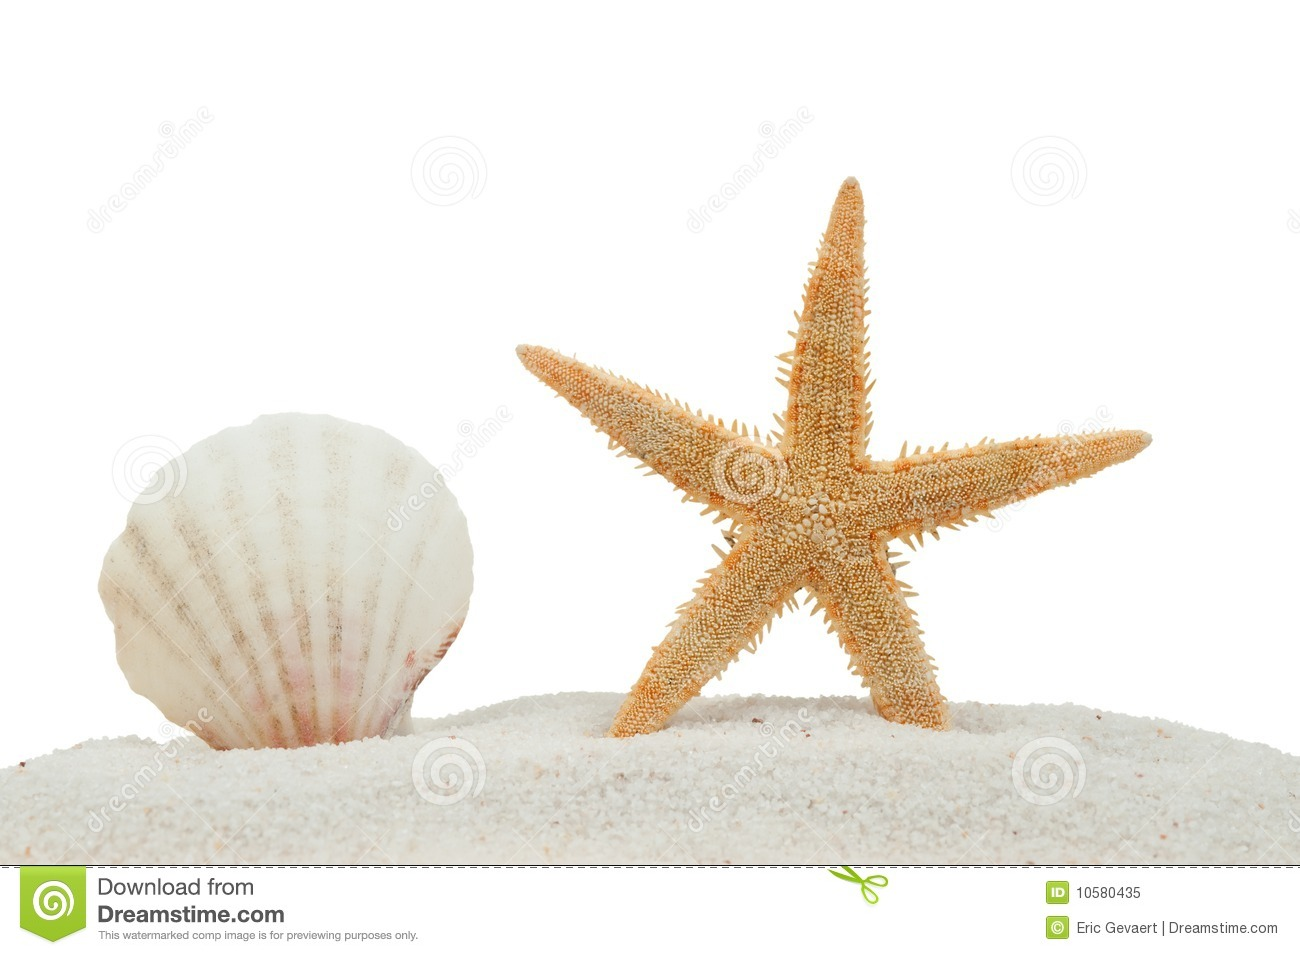 Sea shell and starfish on sand isolated